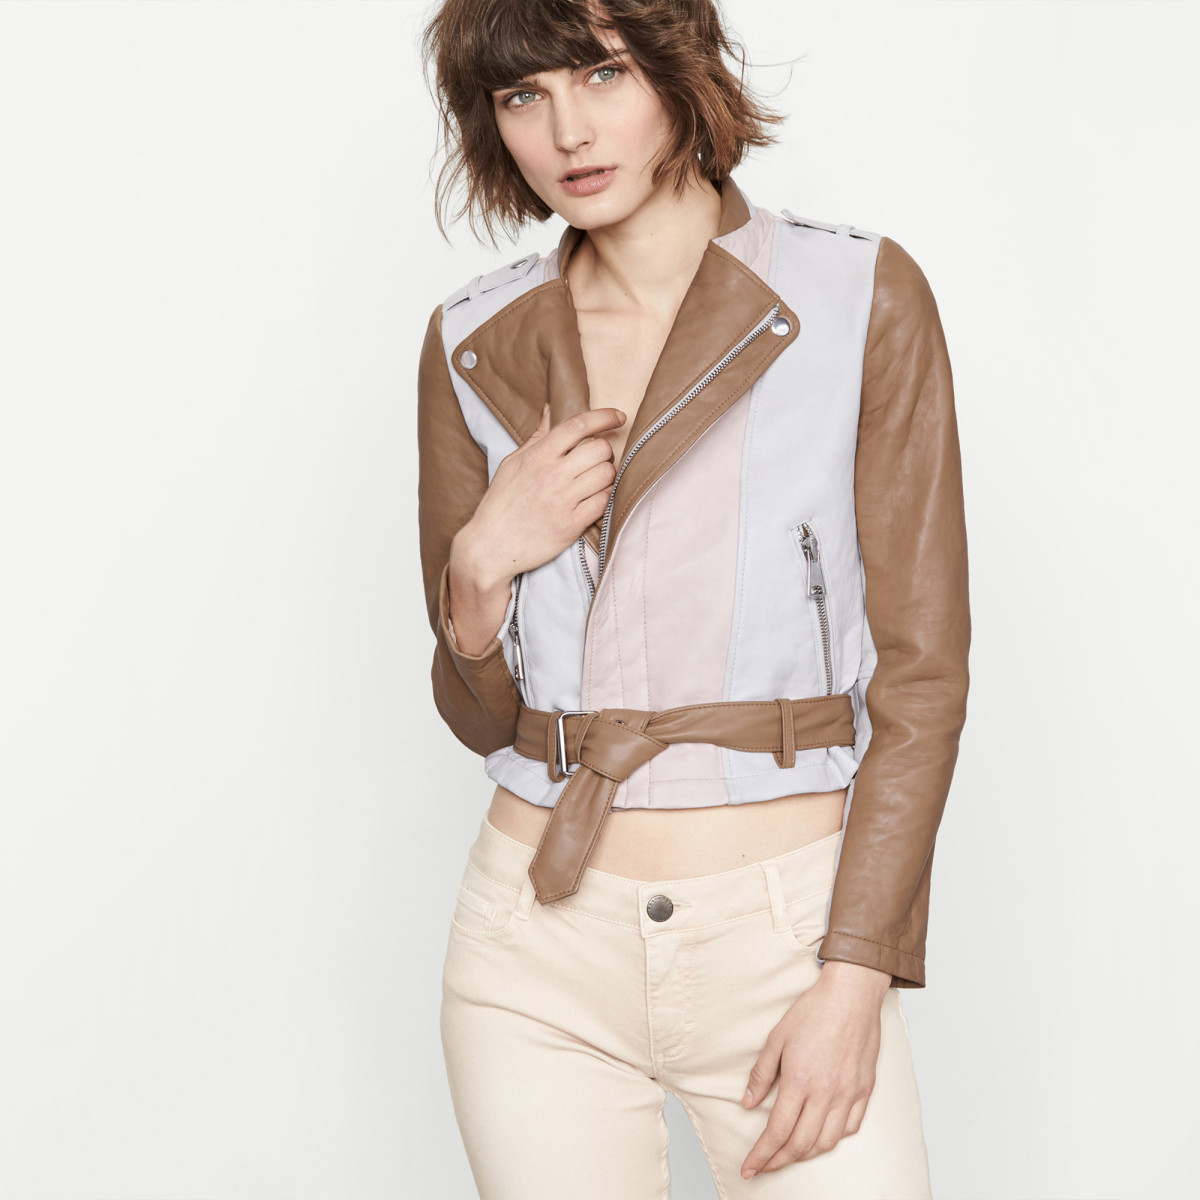 Maje cropped tricolour leather jacket, now $505, available at Maje.